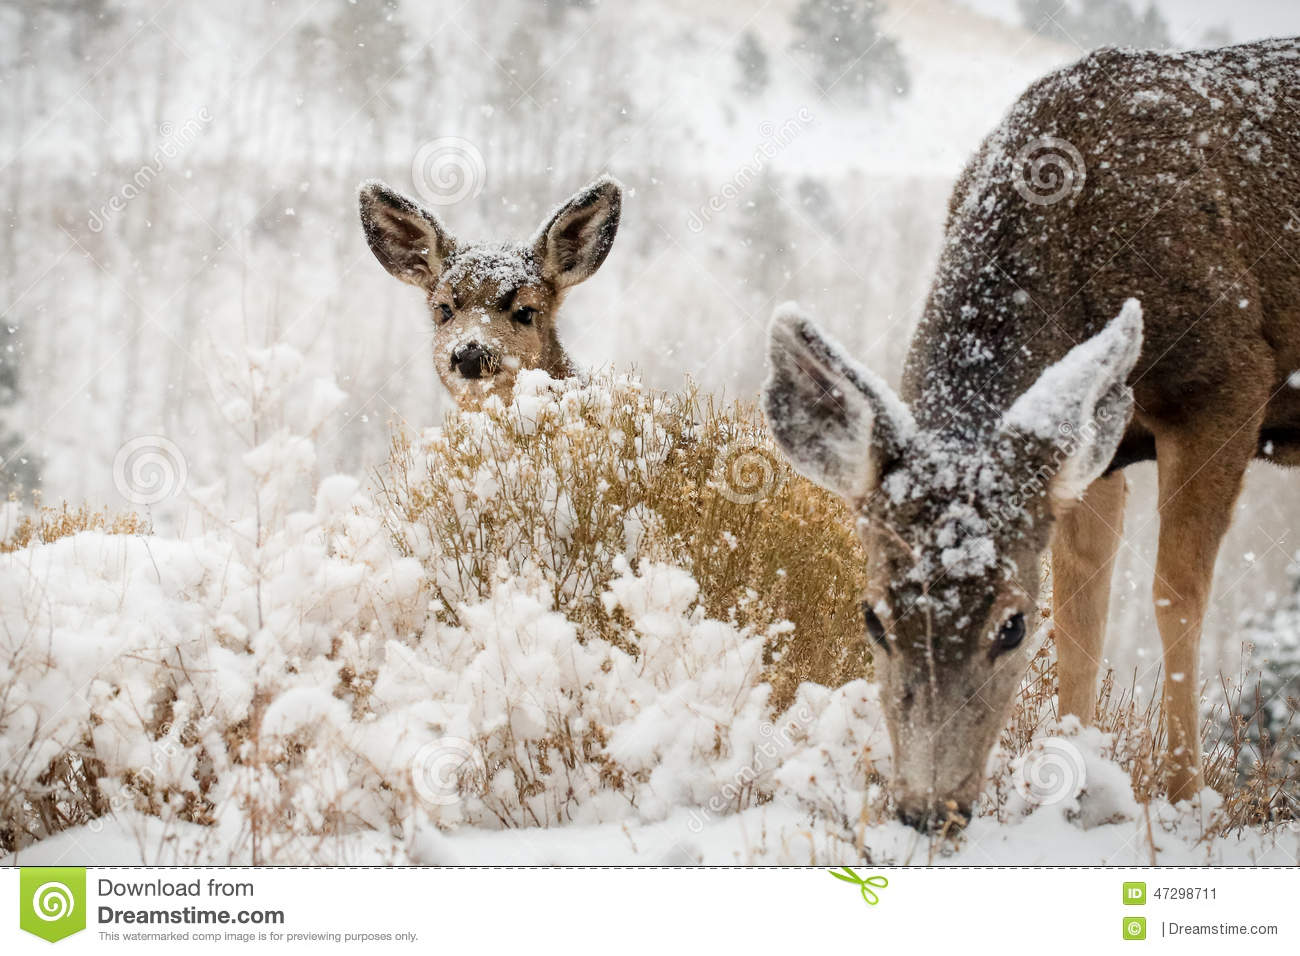 Mom And Baby Deer In Snow Scene Stock Photo Image 47298711